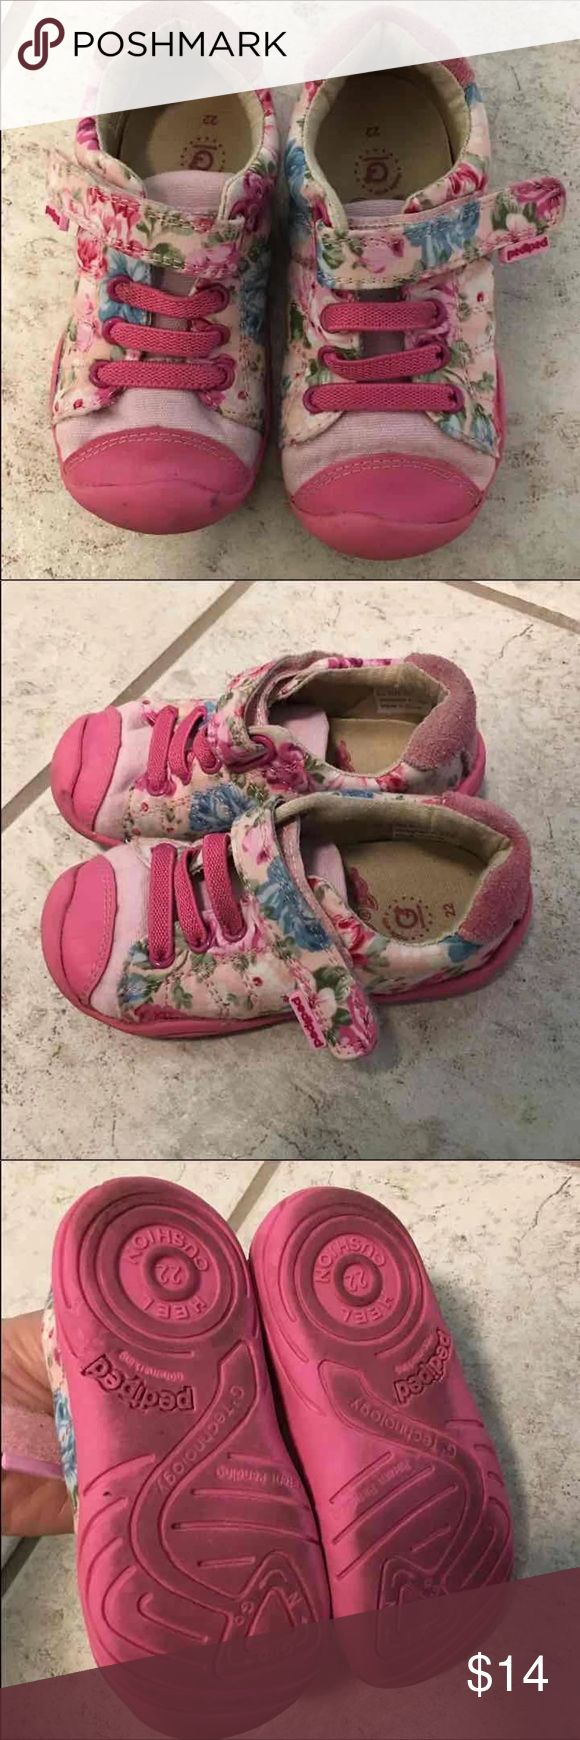 Pediped Girls Floral Sneakers 6 Good used condition. Some wear as pictured. Size 22 or US 6. pediped Shoes Sneakers